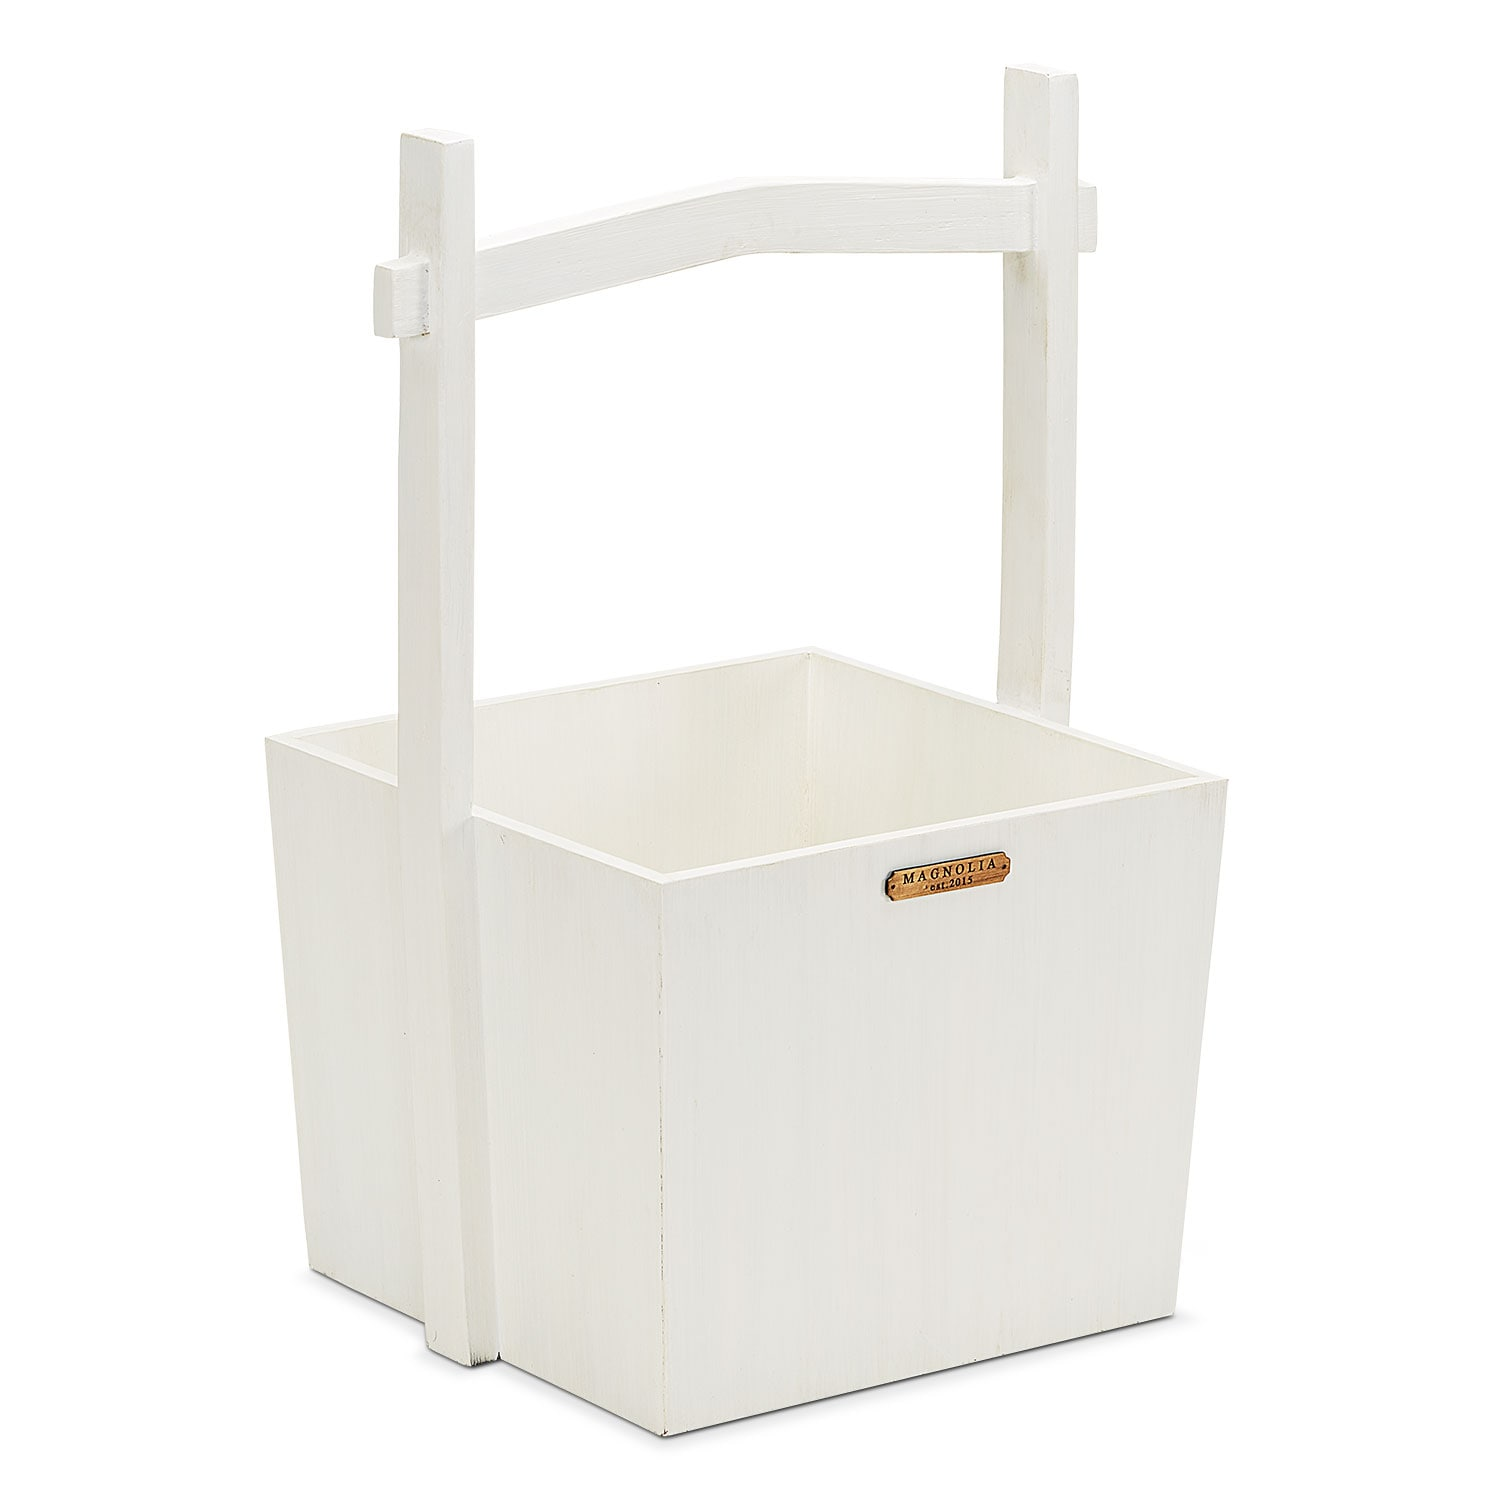 Home Accessories - Wishing Well Wood Basket - White